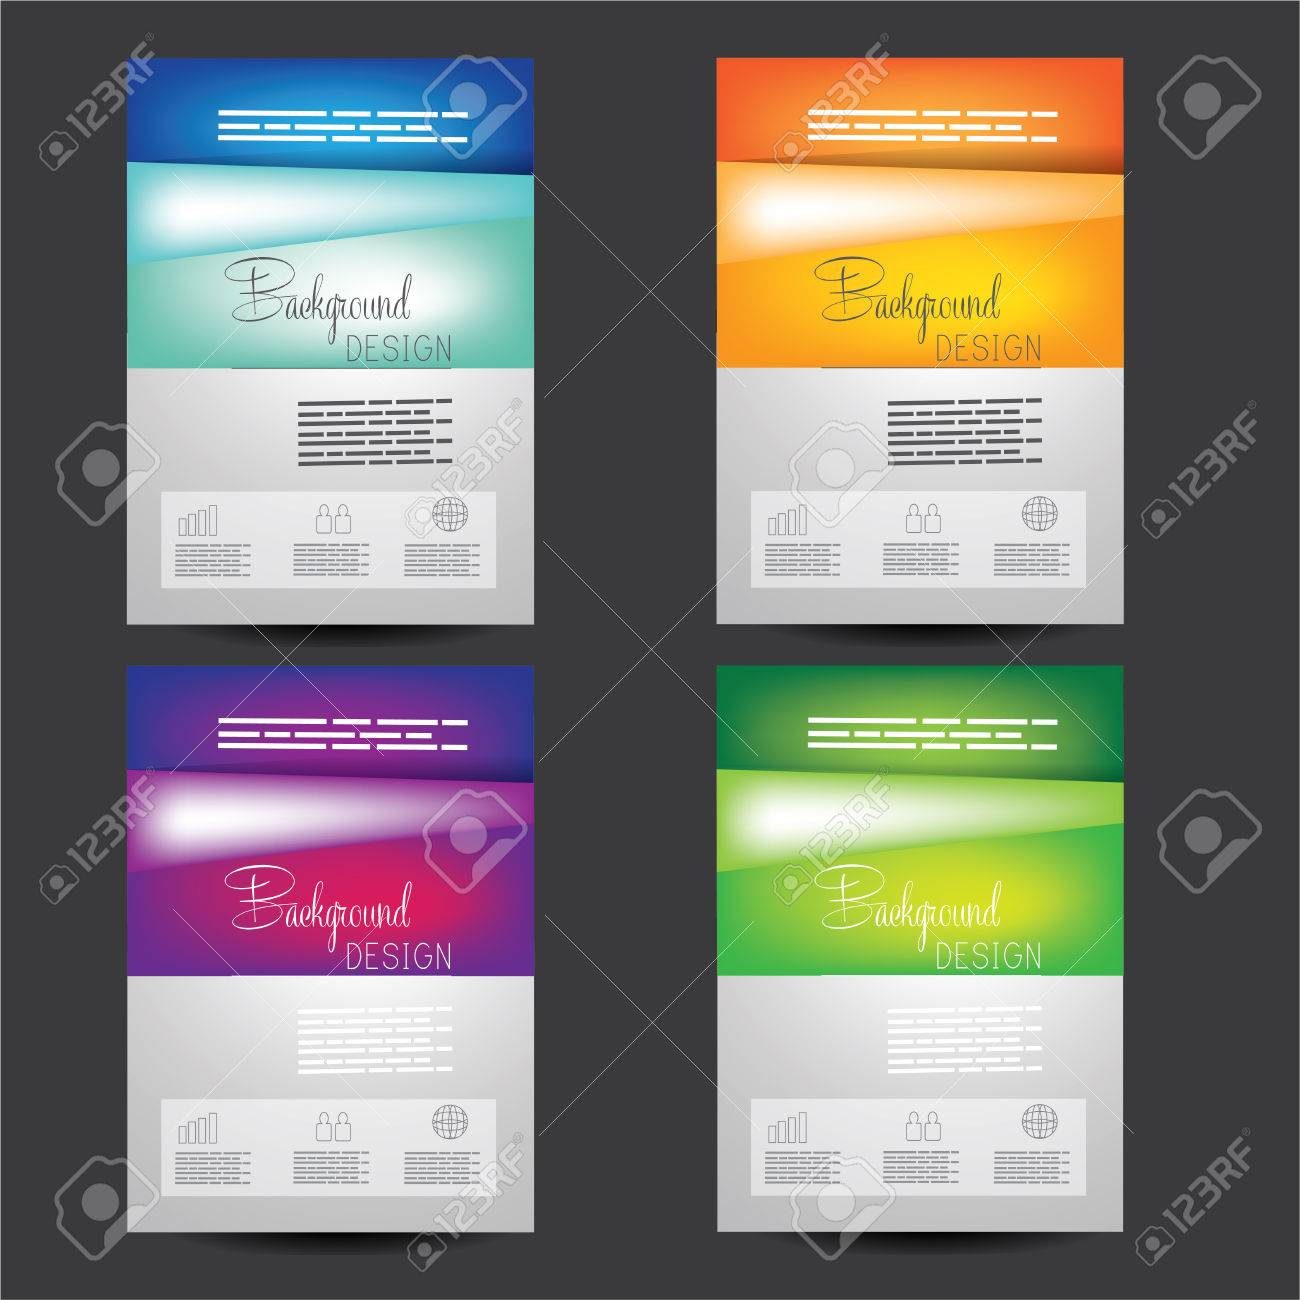 set of professional business red flyer template brochure or vector set of professional business red flyer template brochure or cover design or corporate banner design for publishing print and presentation eps 10